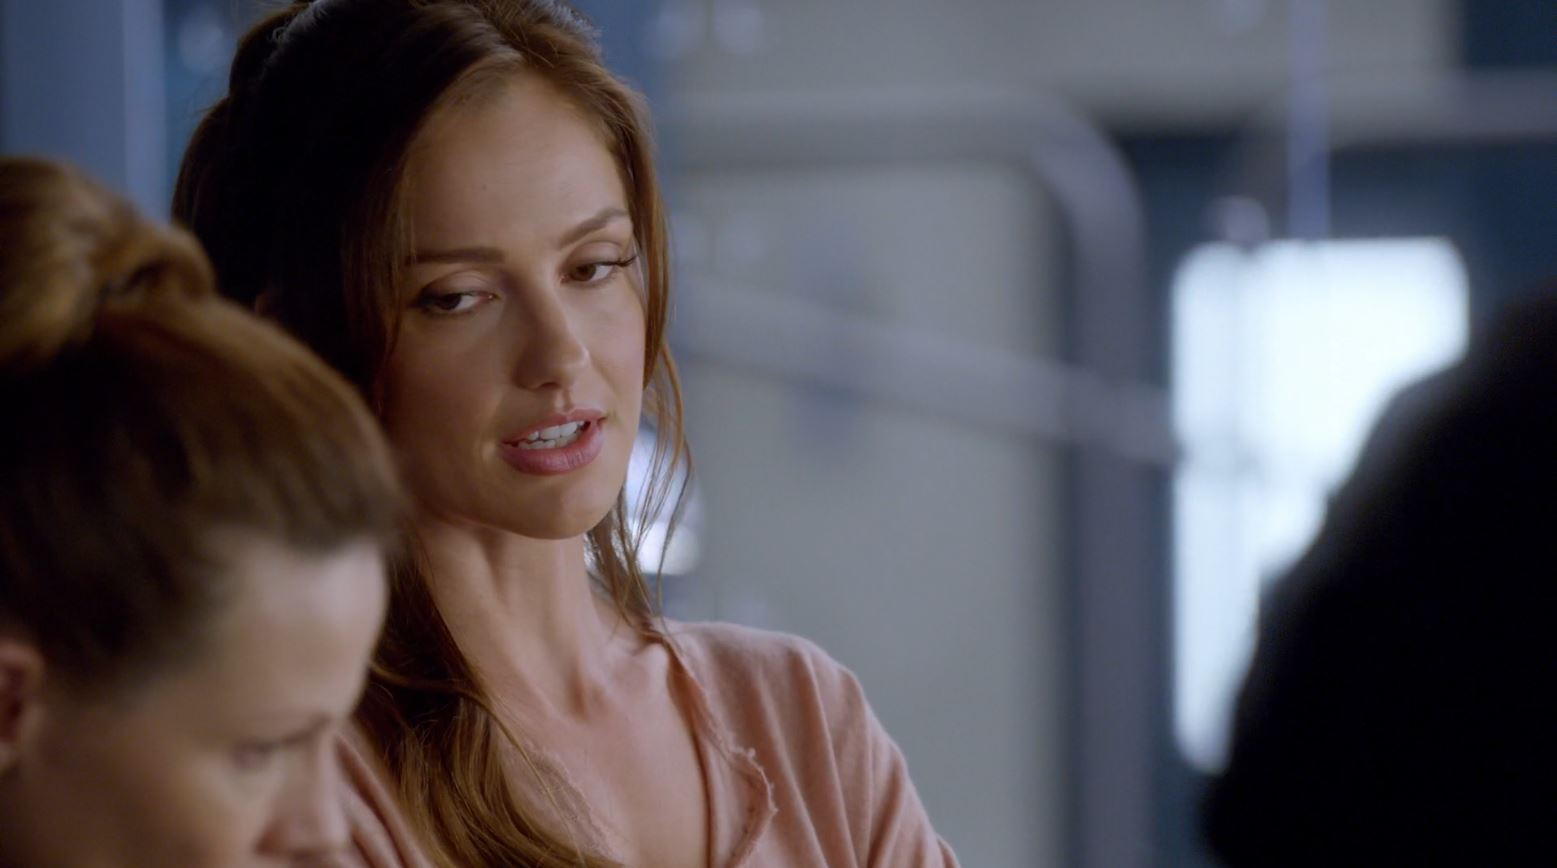 Almost Human - Minka Kelley as Detective Stahl